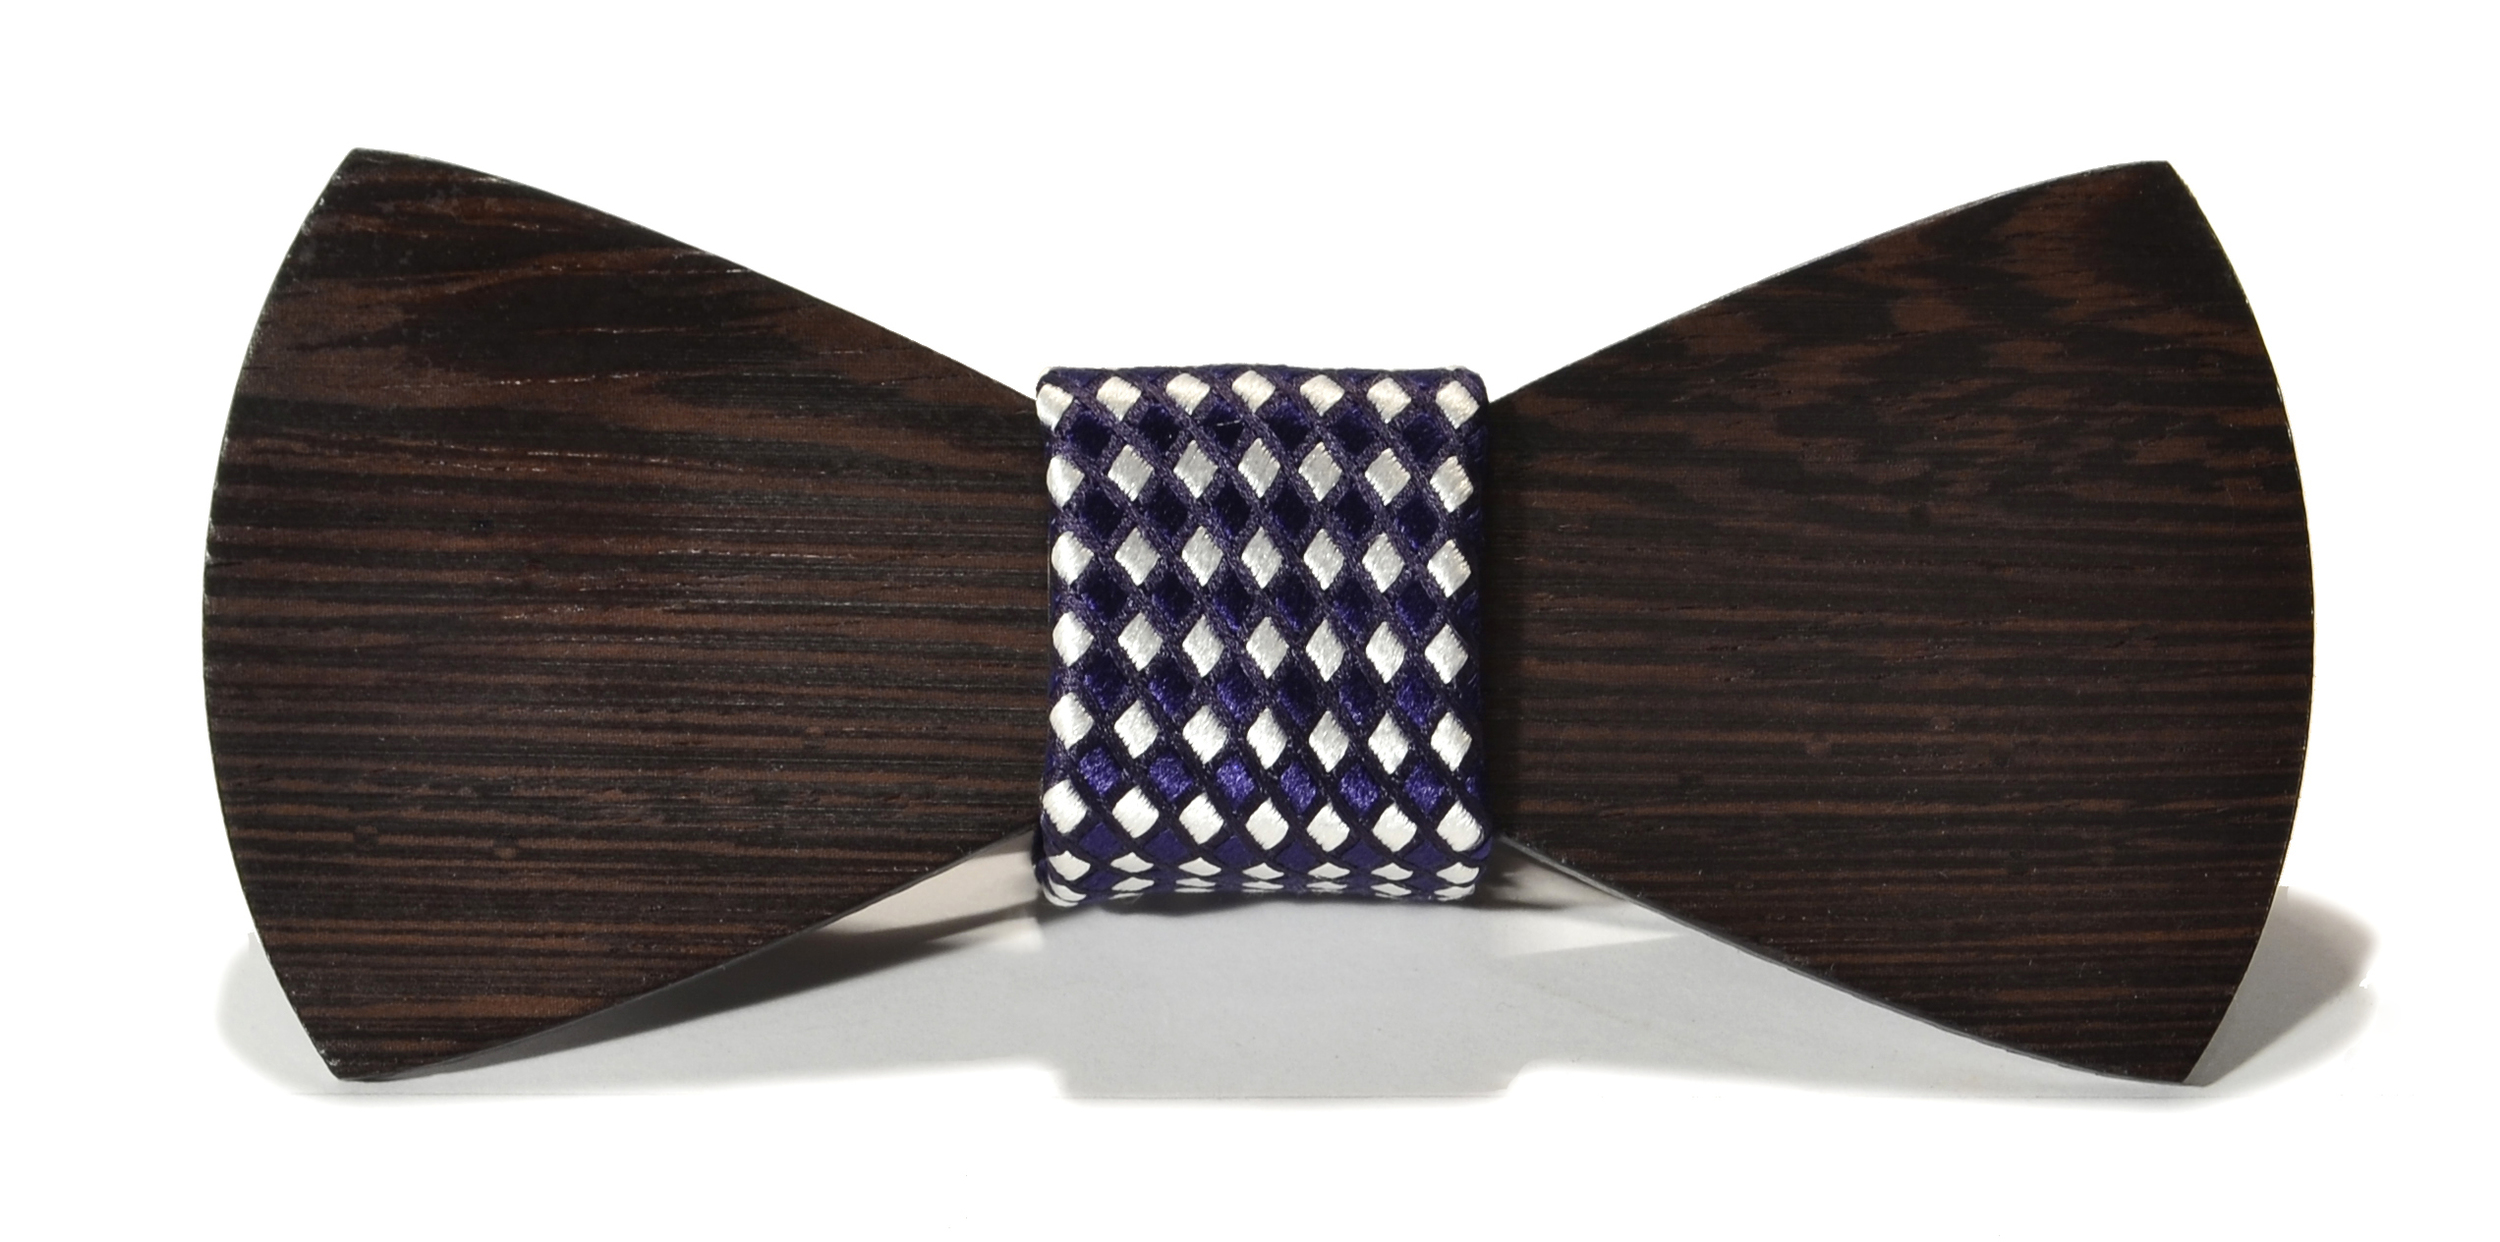 The Rook Wenge Traditional Silk Wooden Bow Tie